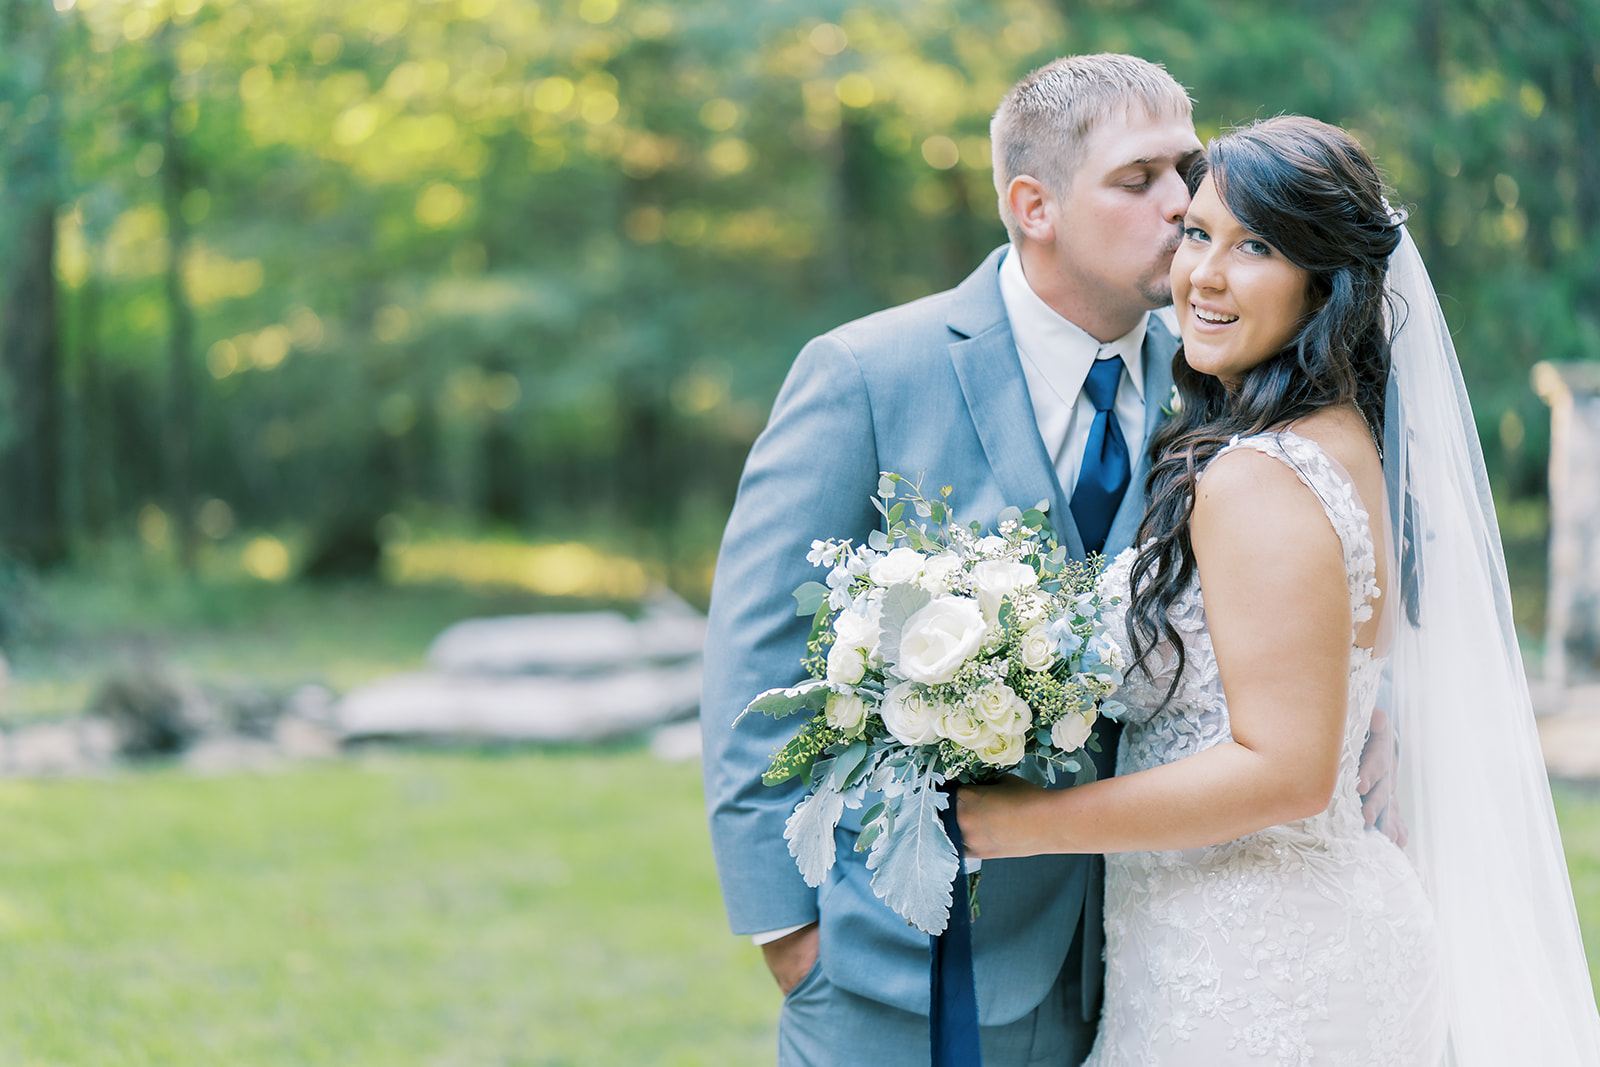 Chelsea Watkins Photography | Nashville Bride Guide